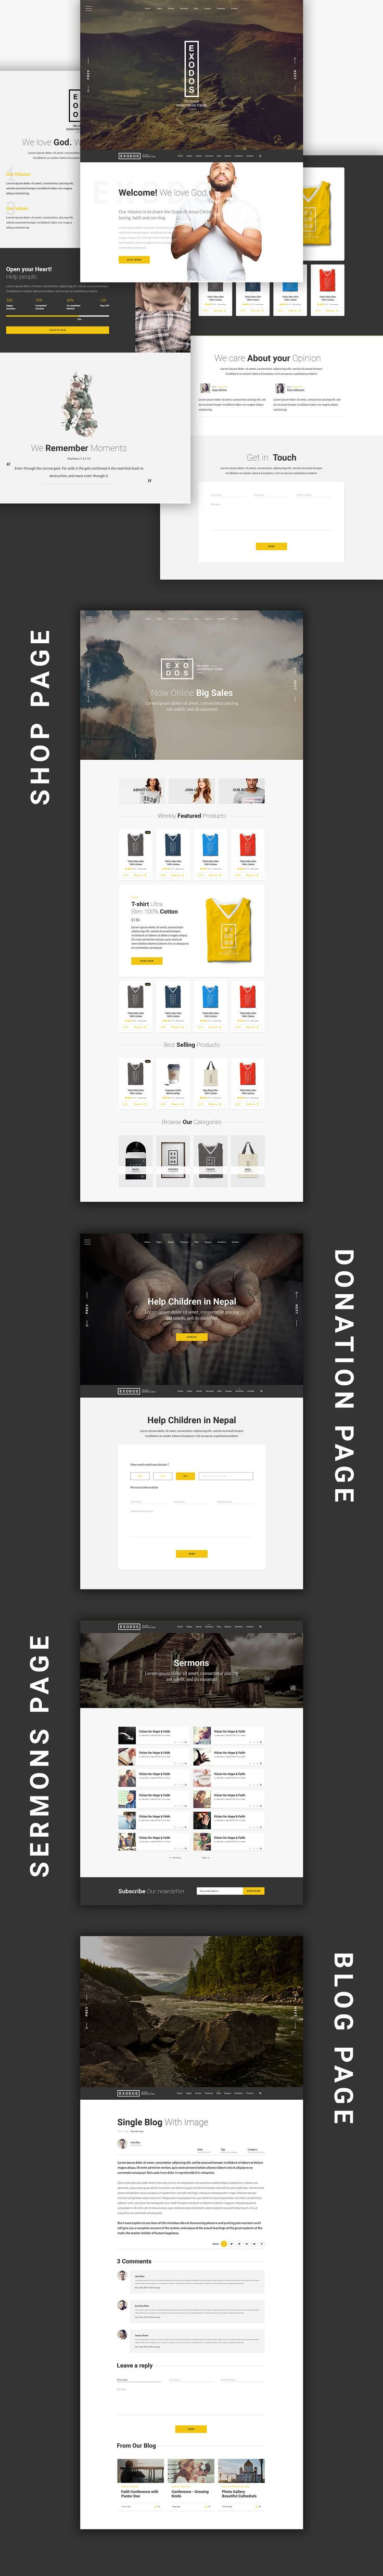 Exodos - Church WordPress Theme by modeltheme | ThemeForest